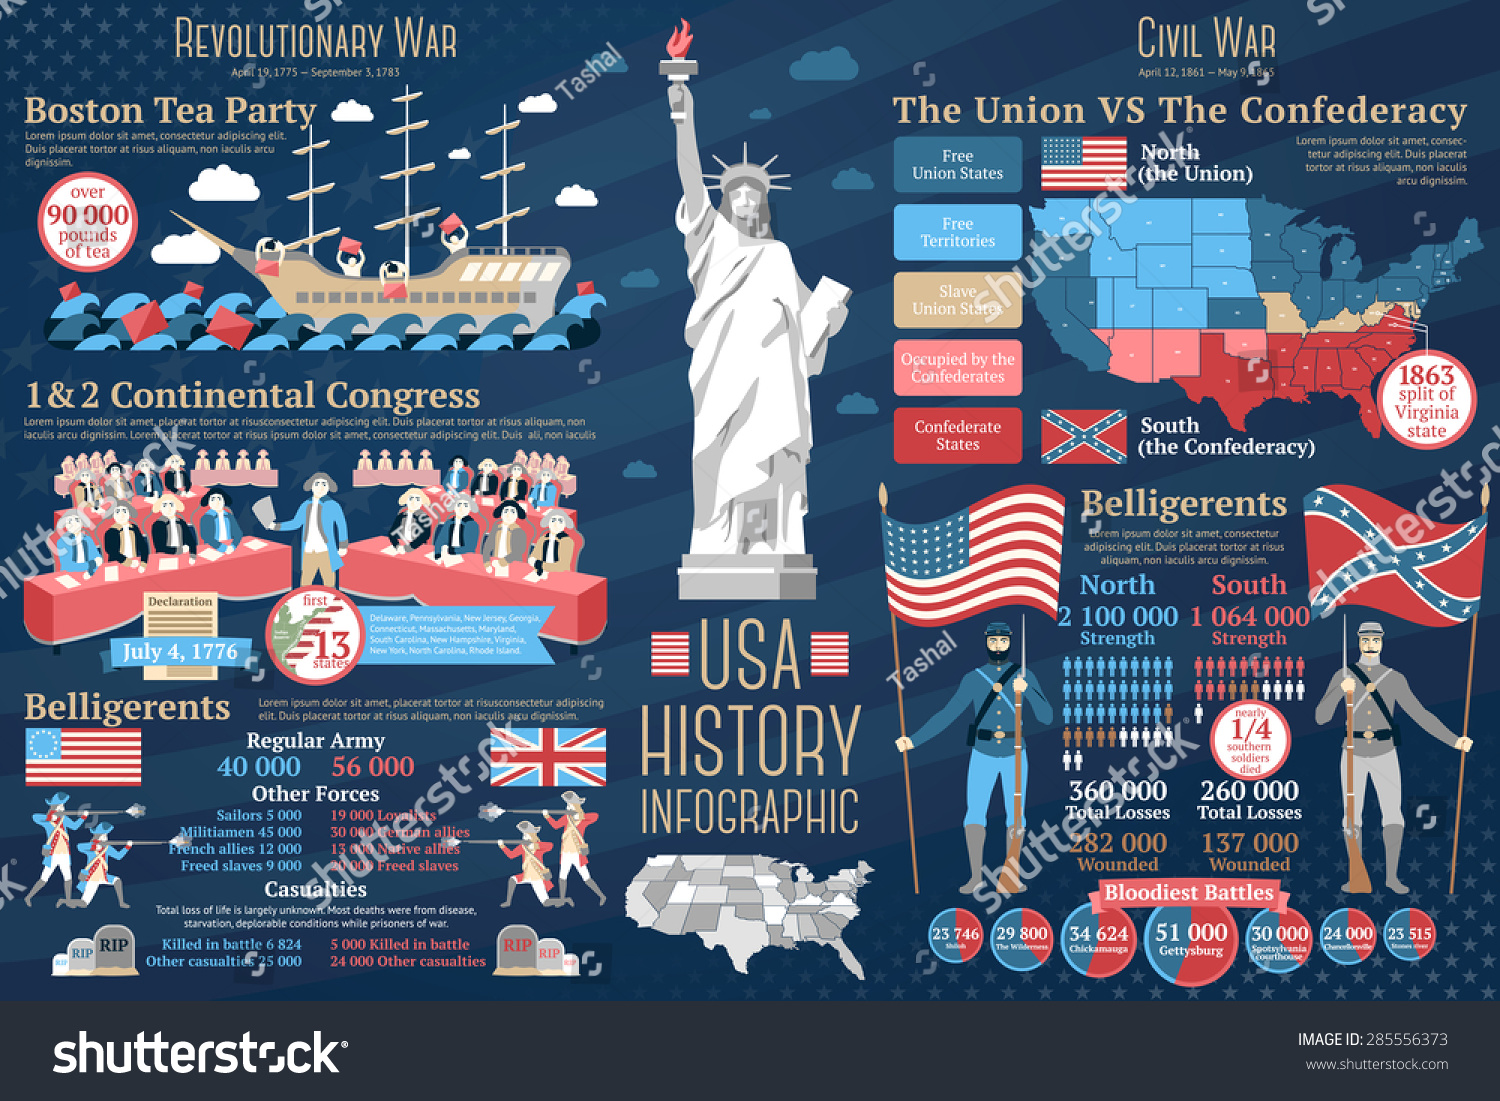 a history of the boston tea party in the revolutionary war The boston tea party had the sons of which were on the ships at the boston harbor, is known in history as the led to the american revolution.